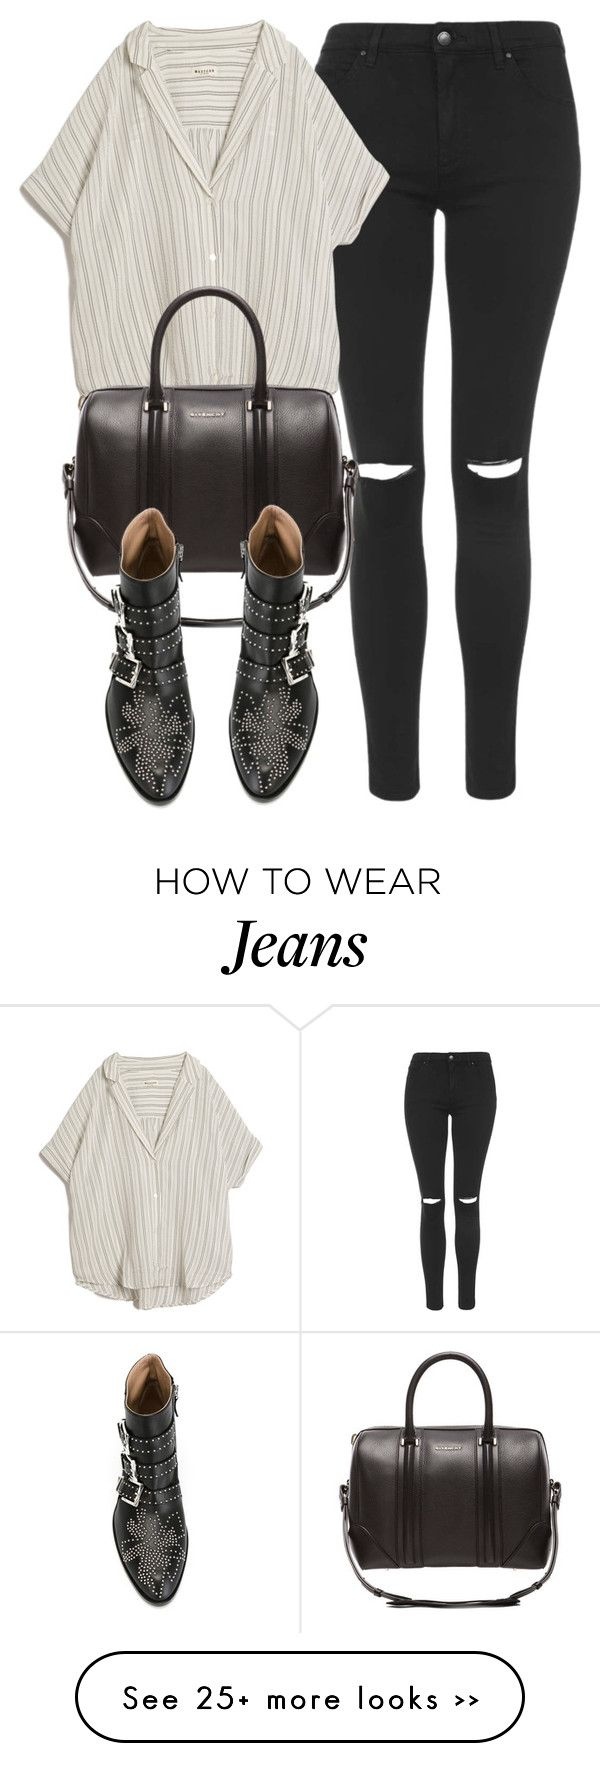 online accessories shopping   34 Untitled  4424  34  by laurenmboot on Polyvore featuring Topshop  MASSCOB  Givenchy and Chlo